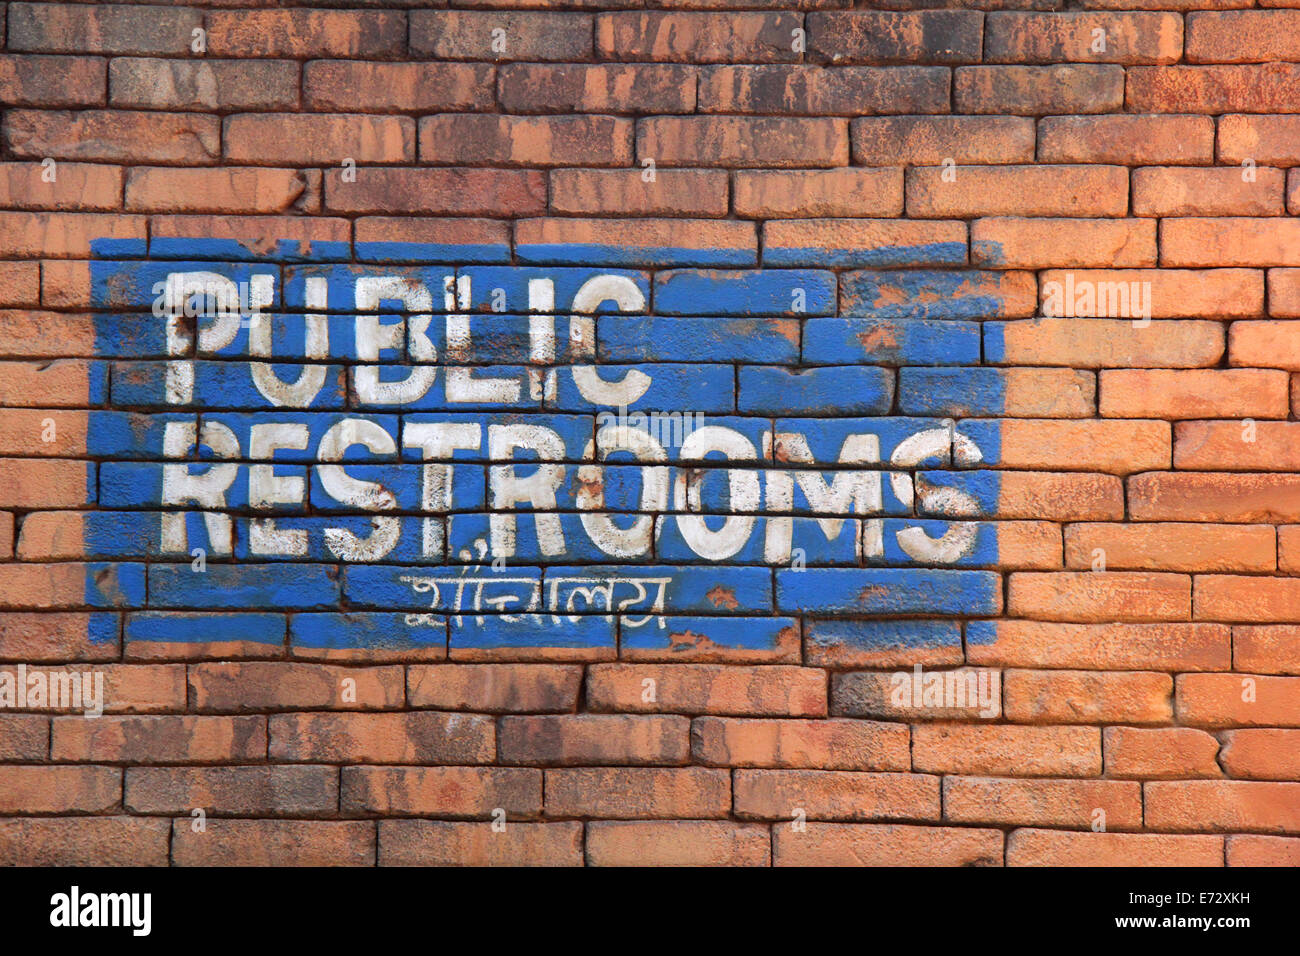 Public restrooms sign with Hindi writing below. - Stock Image